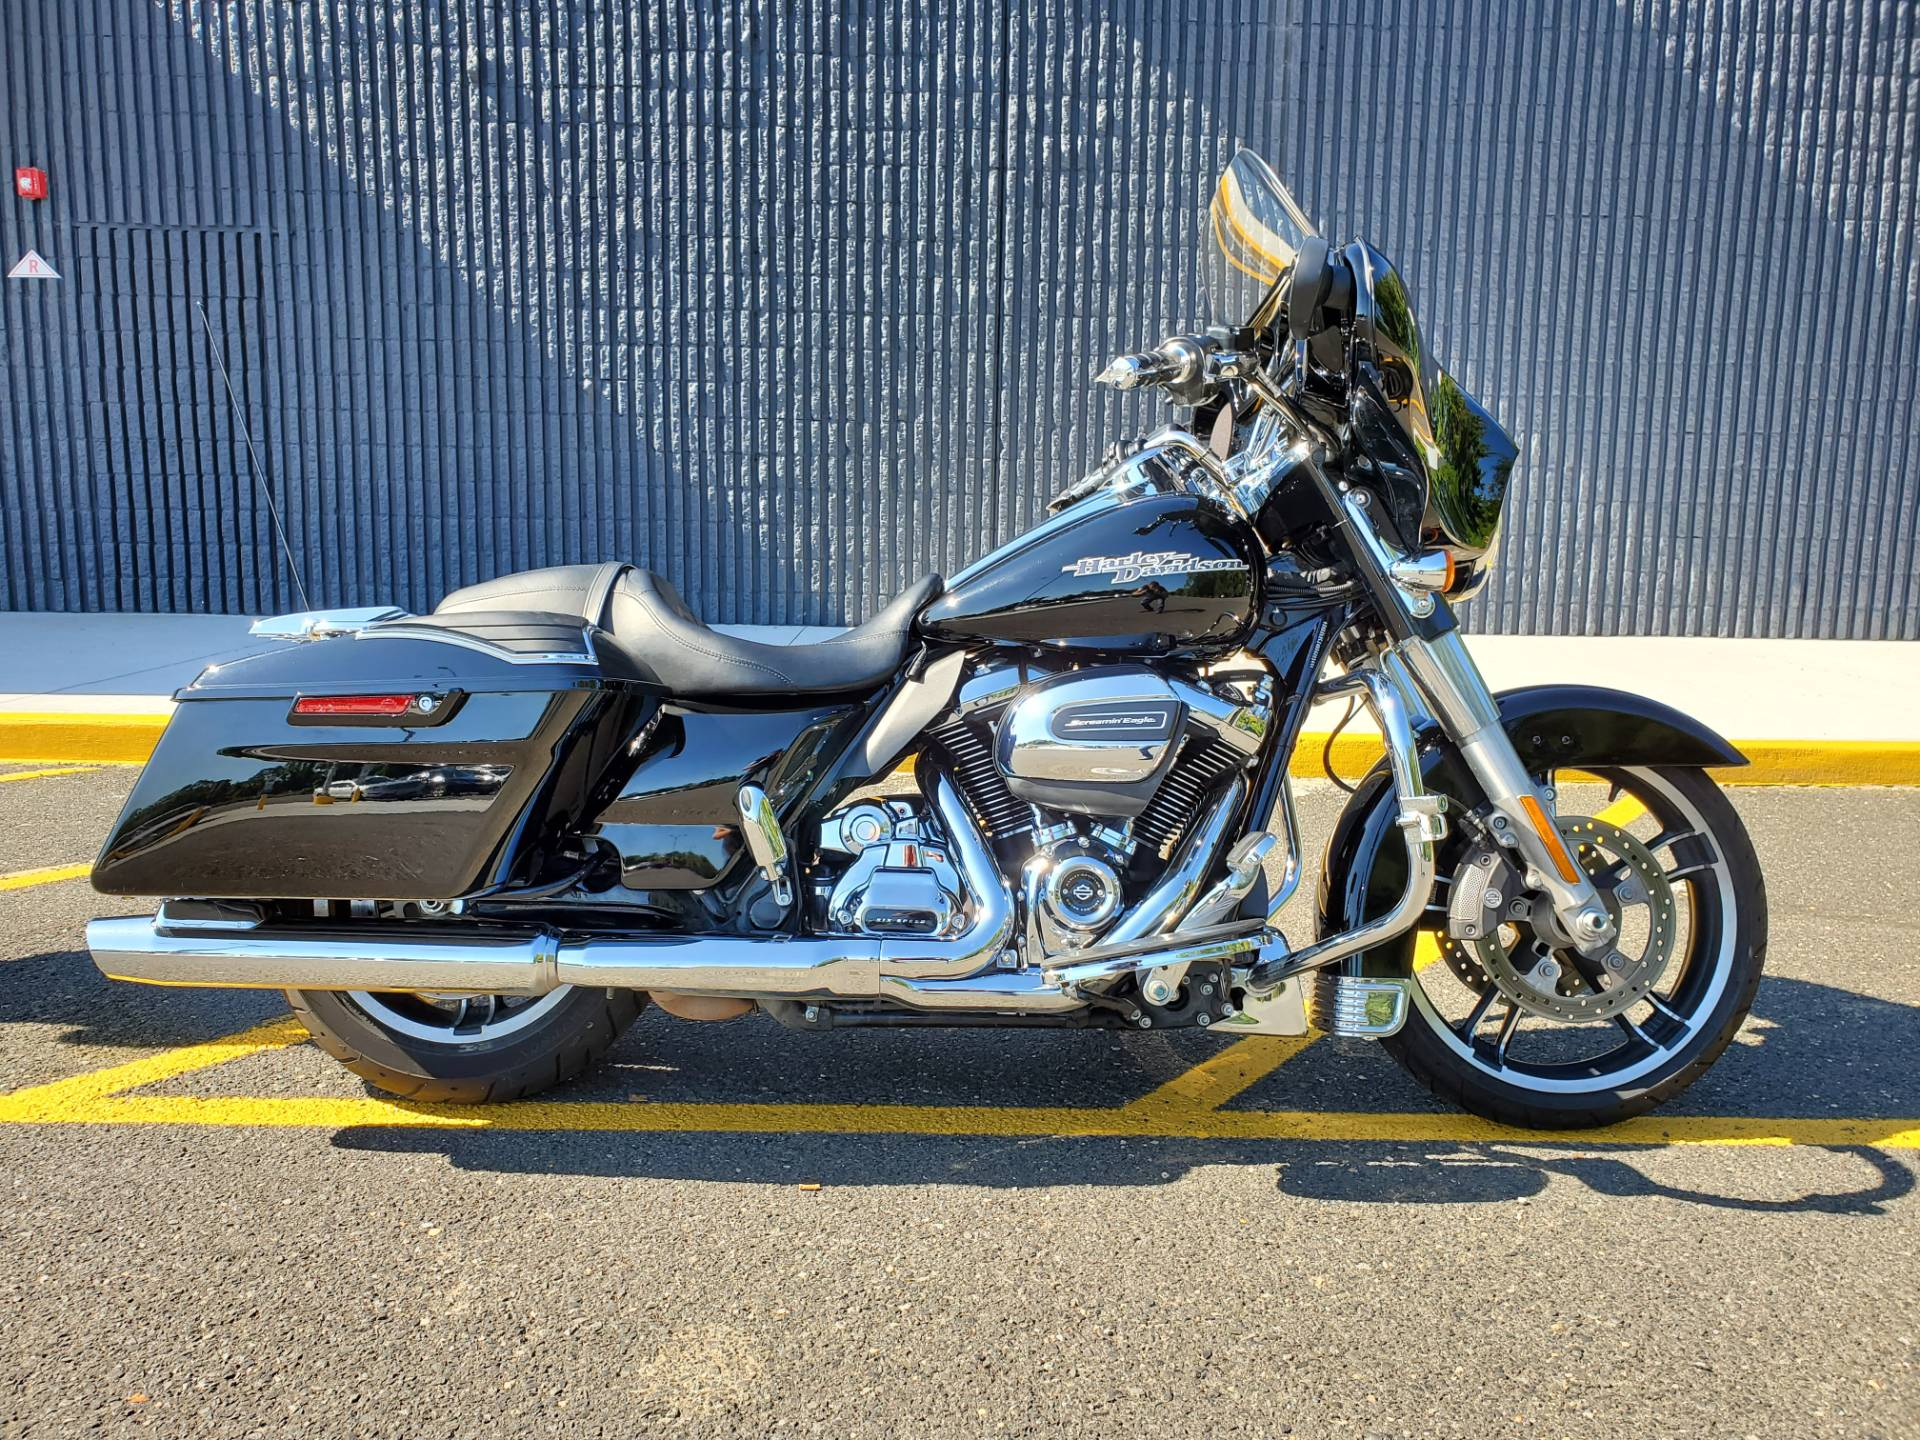 2017 Harley-Davidson Street Glide Special in West Long Branch, New Jersey - Photo 1